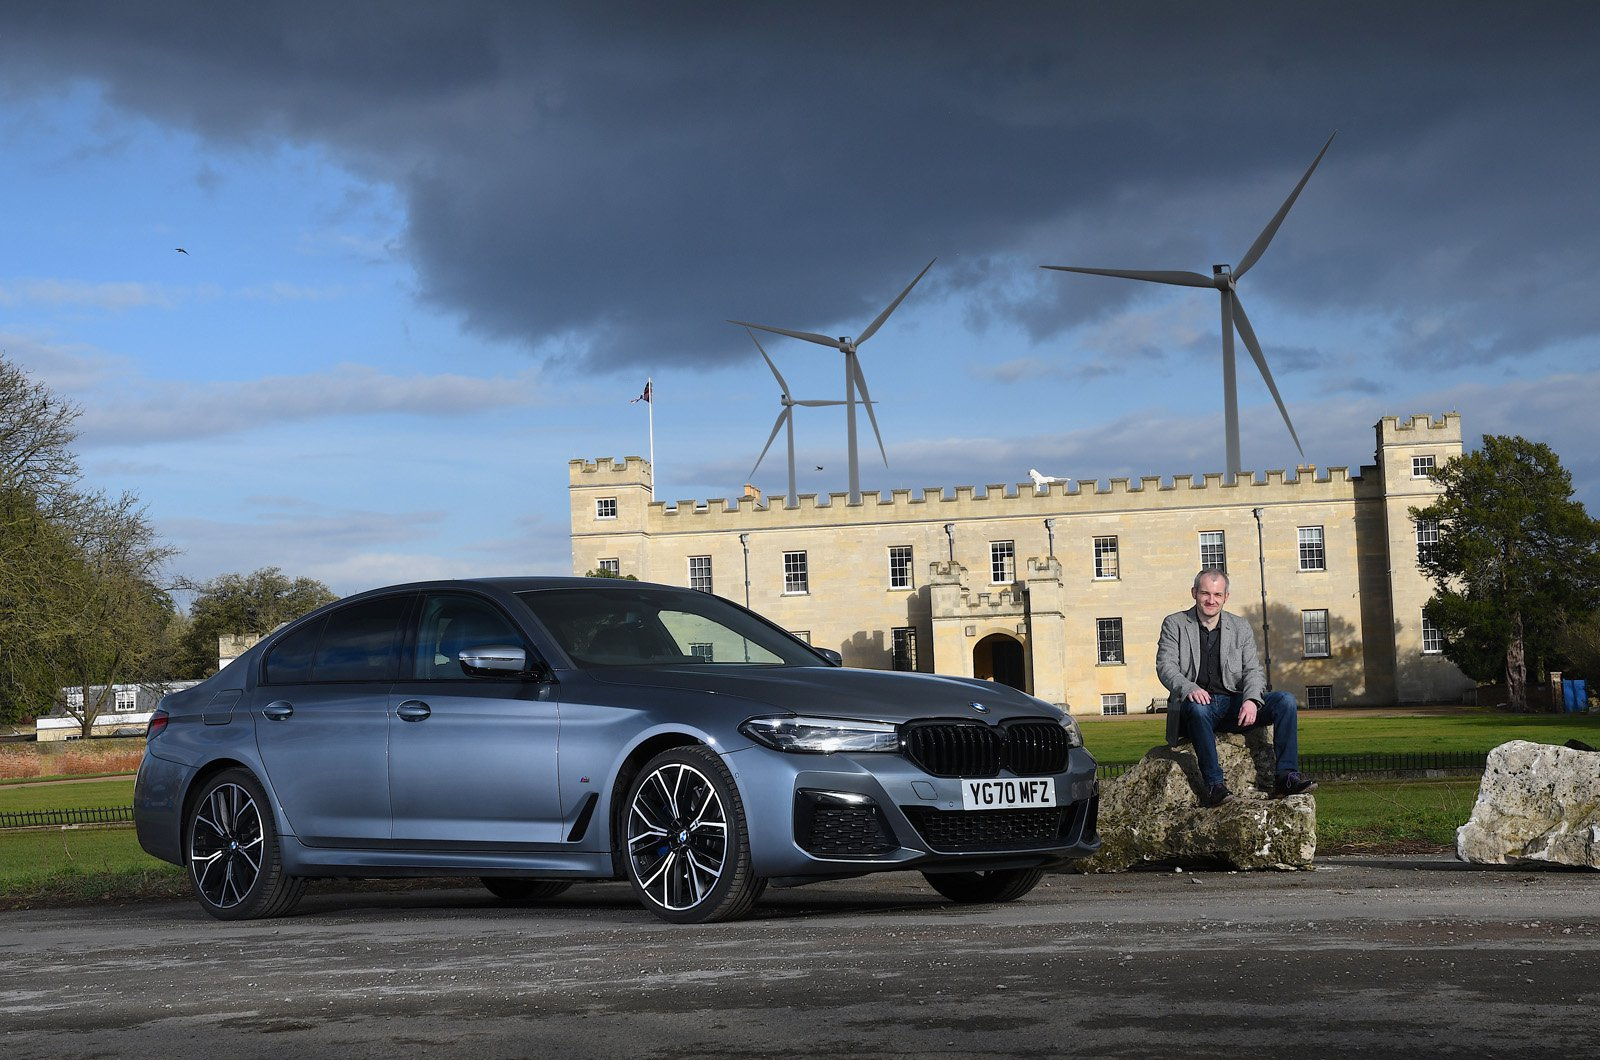 LT BMW 530e in front of stately home and wind turbines